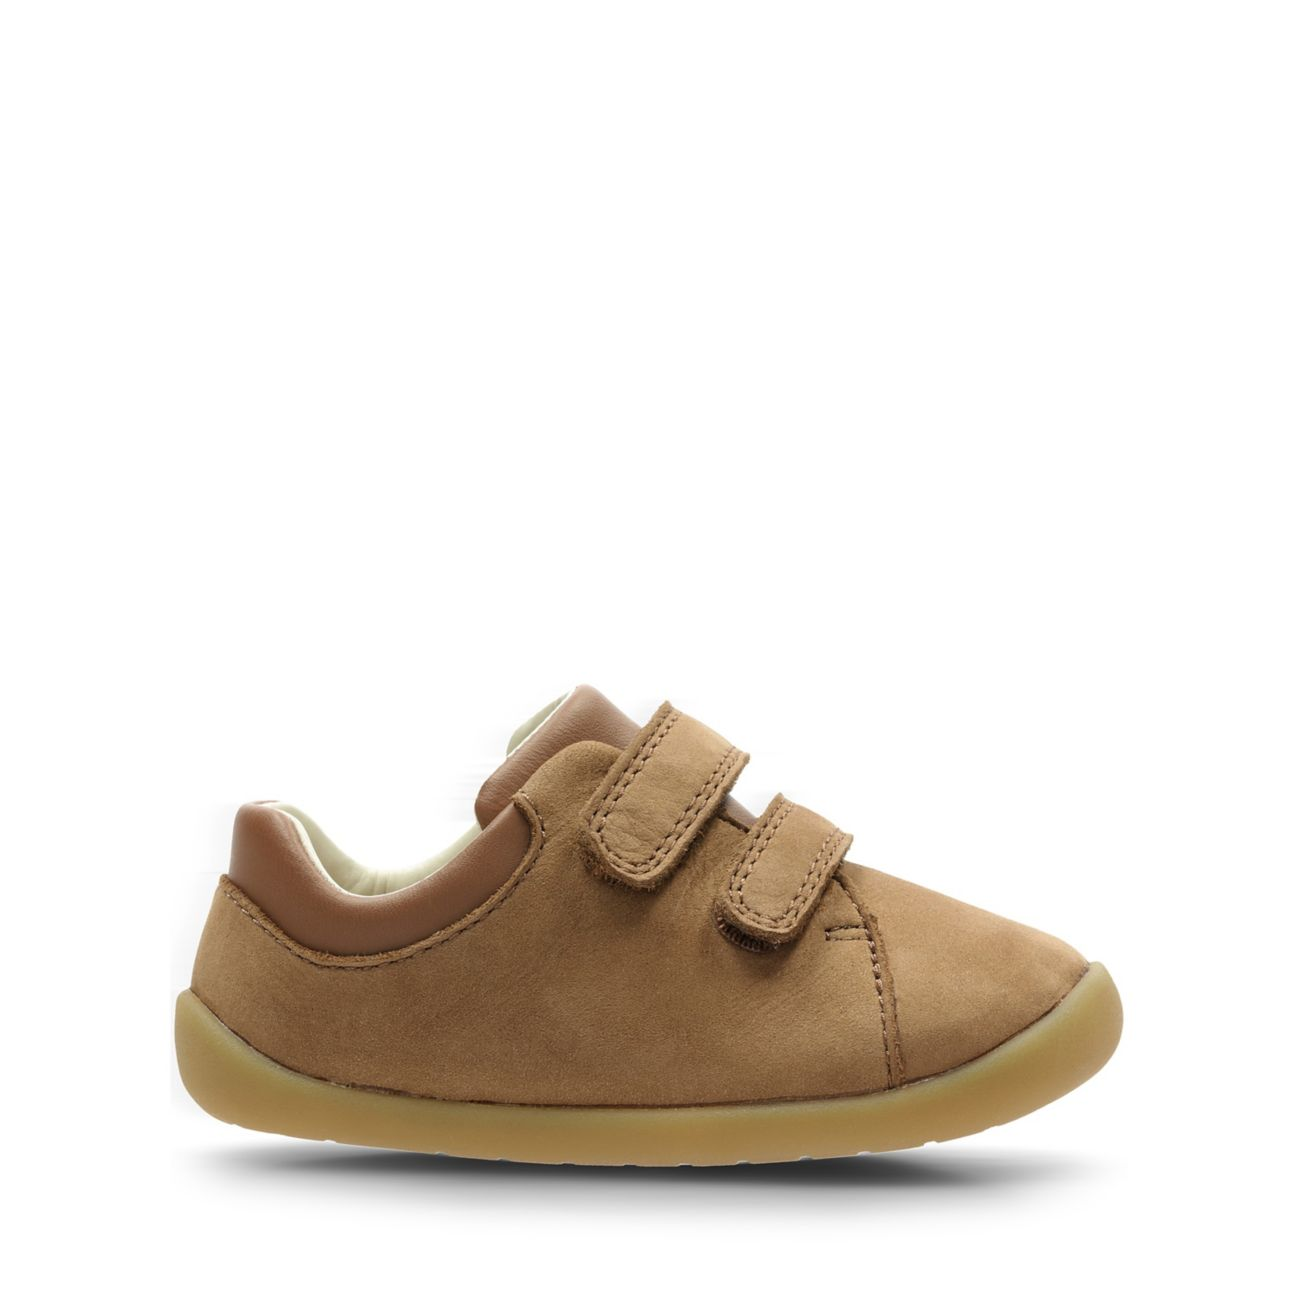 124b41e9799234 Roamer Craft T Tan Leather - Kids Shoes - Clarks® Shoes Official Site |  Clarks